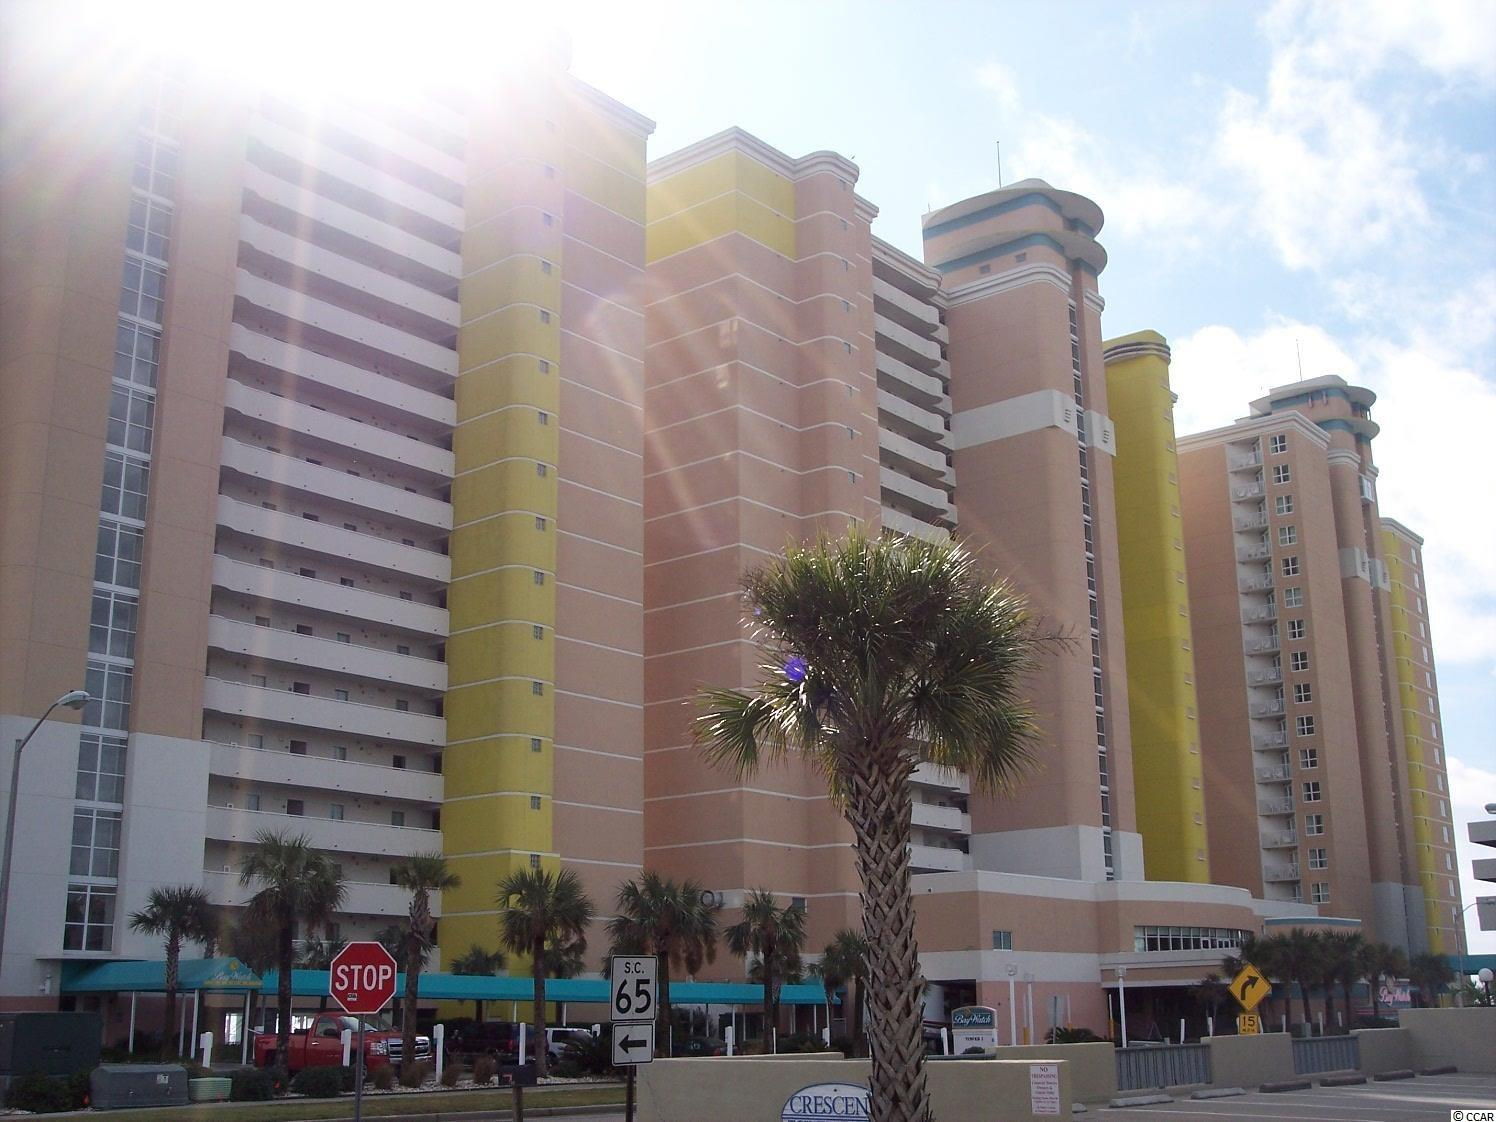 Great two bedroom, two bath condo at Bay Watch Resort in North Myrtle Beach! Resort amenities include 2 indoor and 3 outdoor pools, kiddie pools, hot tubs, lazy river, Resort Convenience Store, 3 on-site dining options, and poolside bar. Short drive to Barefoot Landing and just minutes to shopping, dining, entertainment and golf! Take a look!